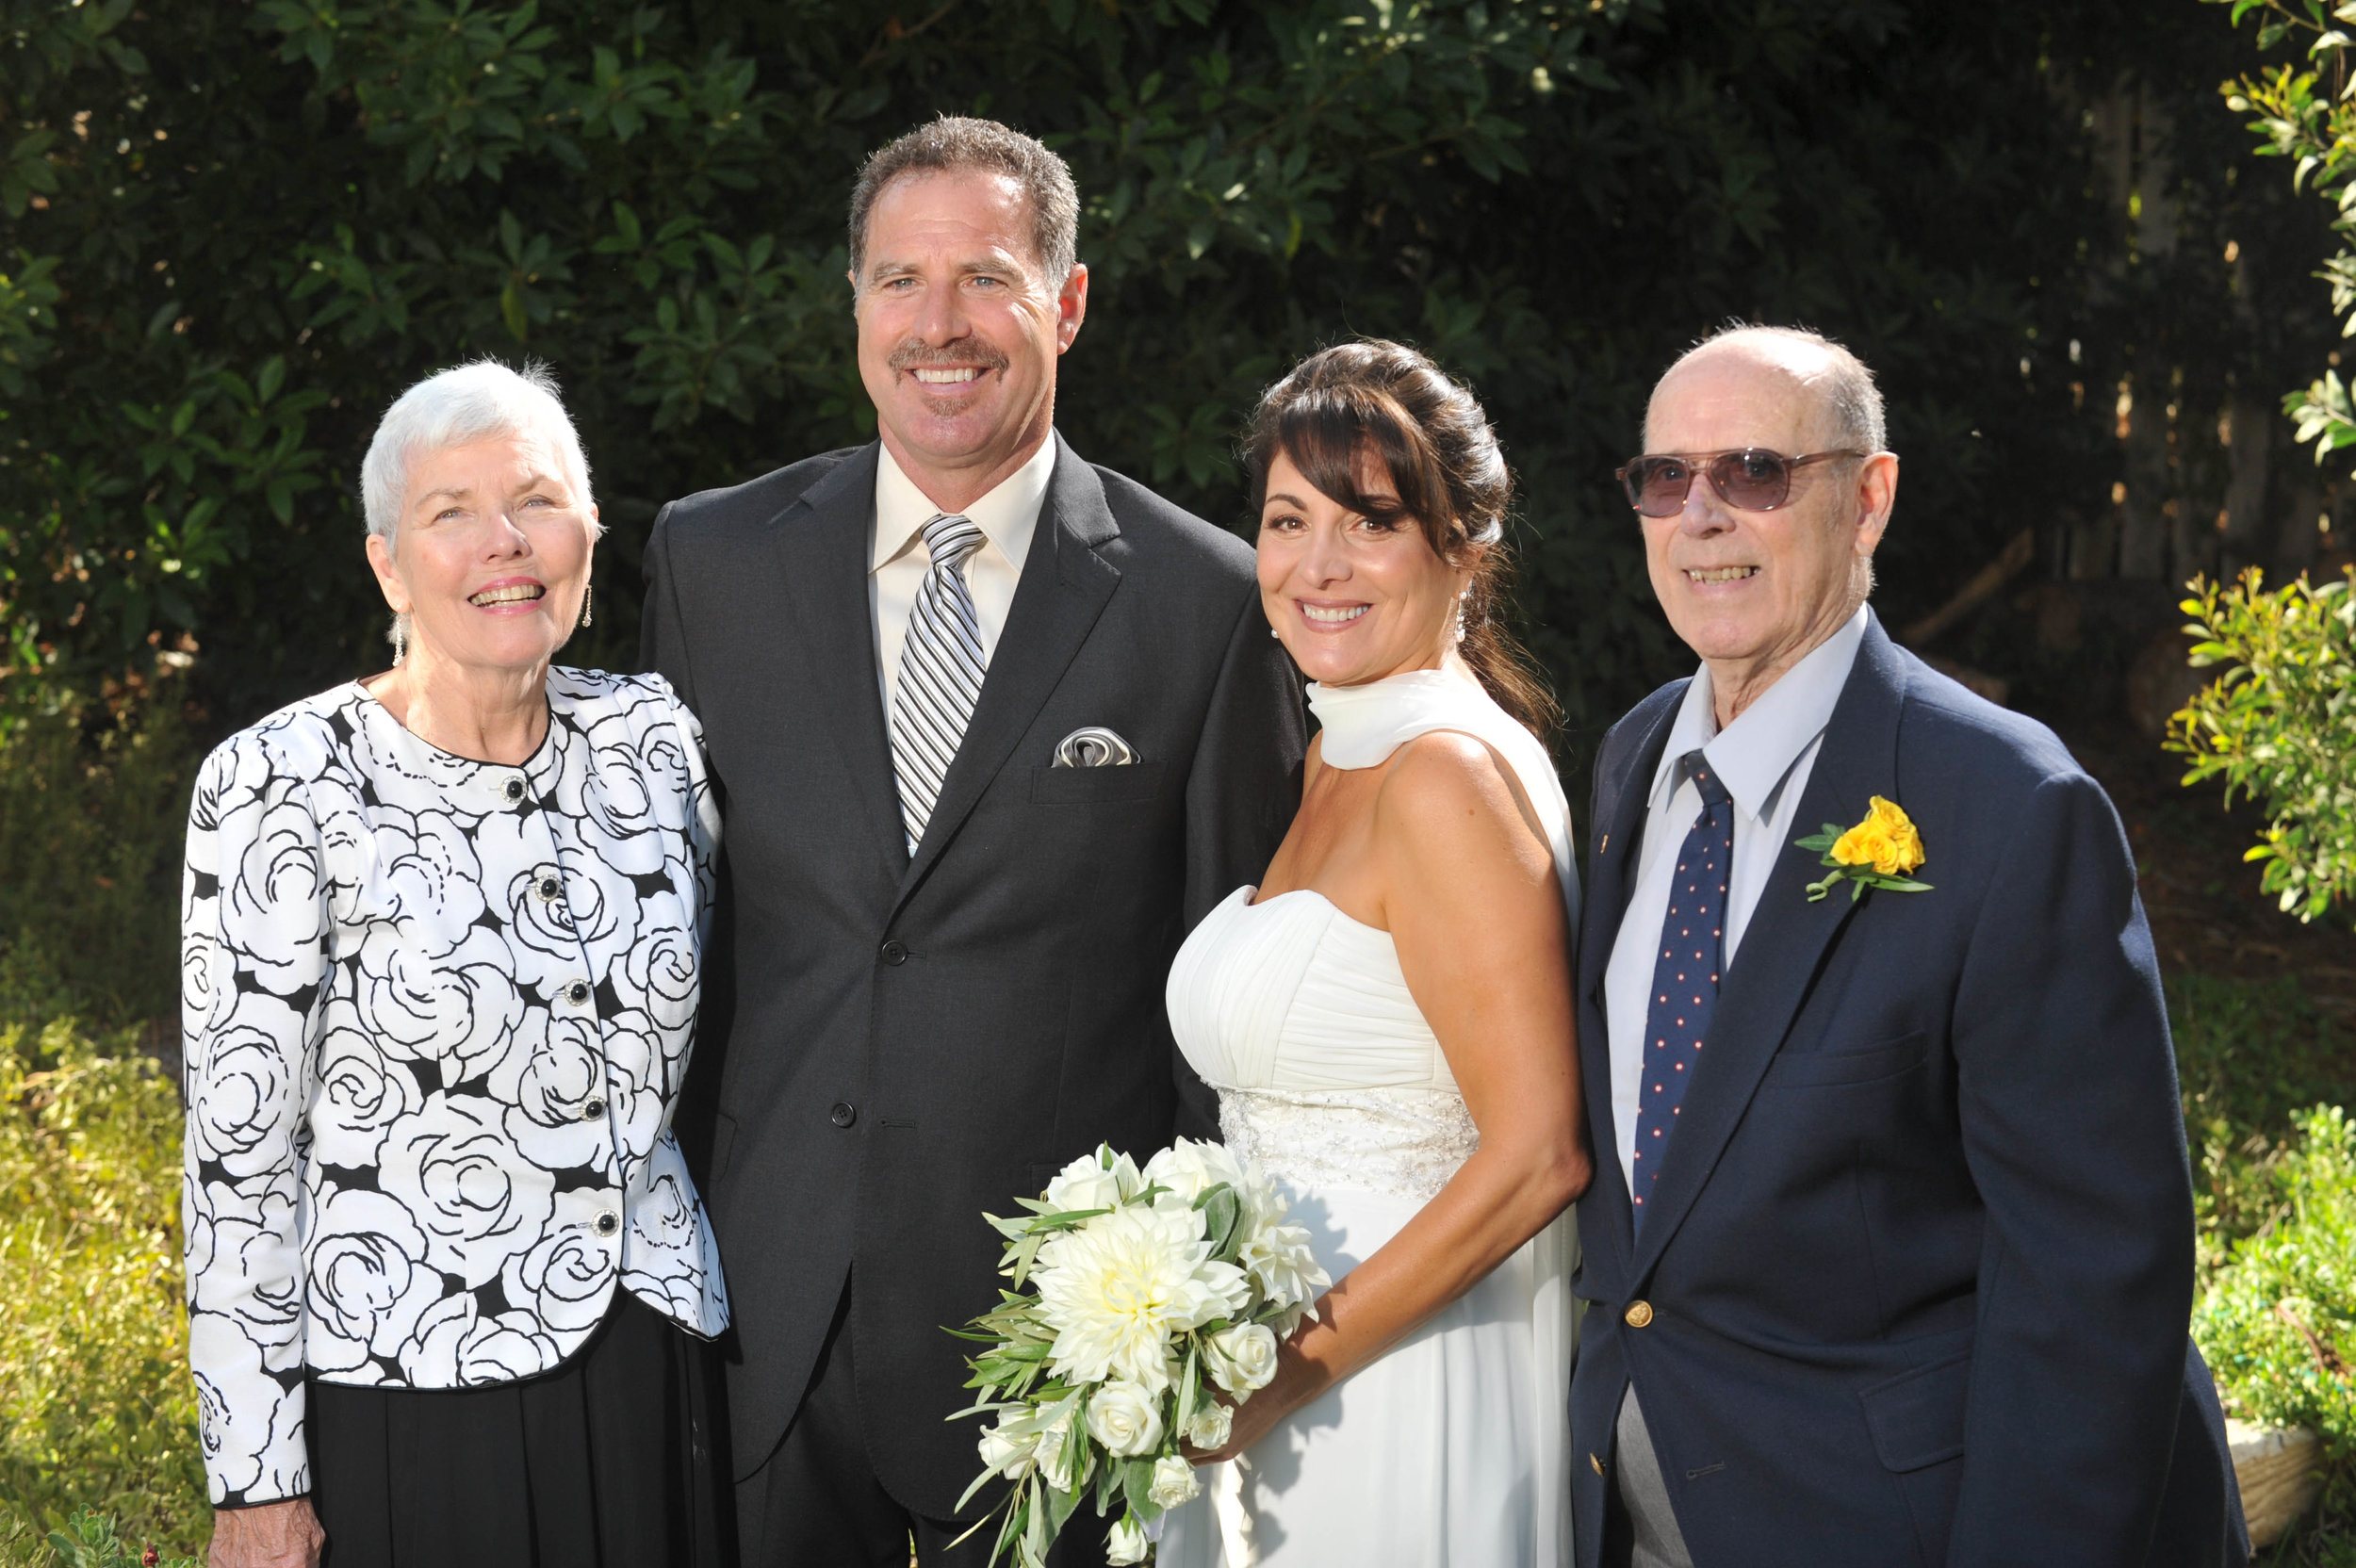 Tina, second from right, with her handsome husband, second from left, on their wedding day. On right is the best Chief of Police. On left, Tina's mother-in-law.